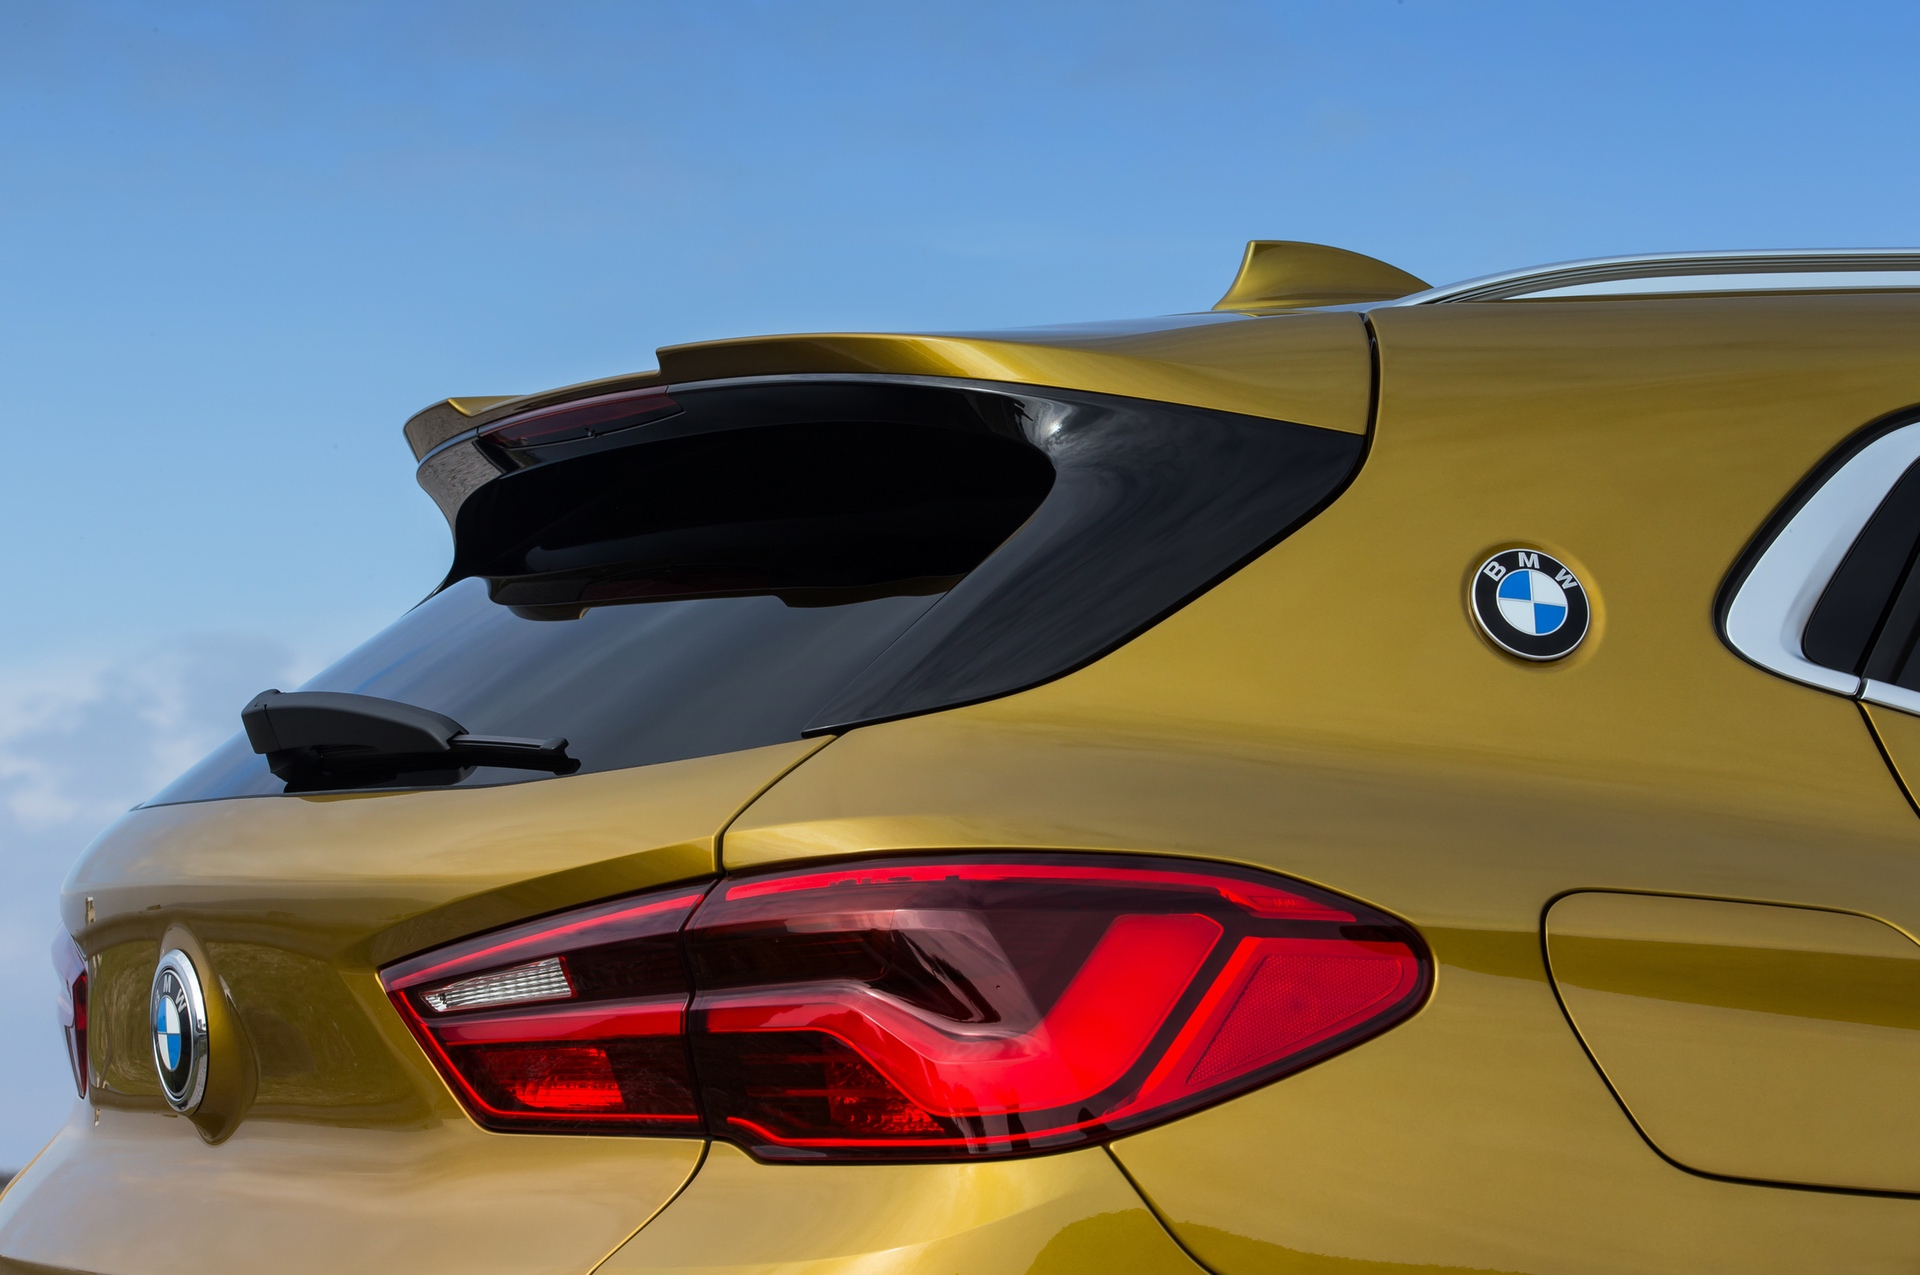 BMW_X2_Greek_presskit_0043